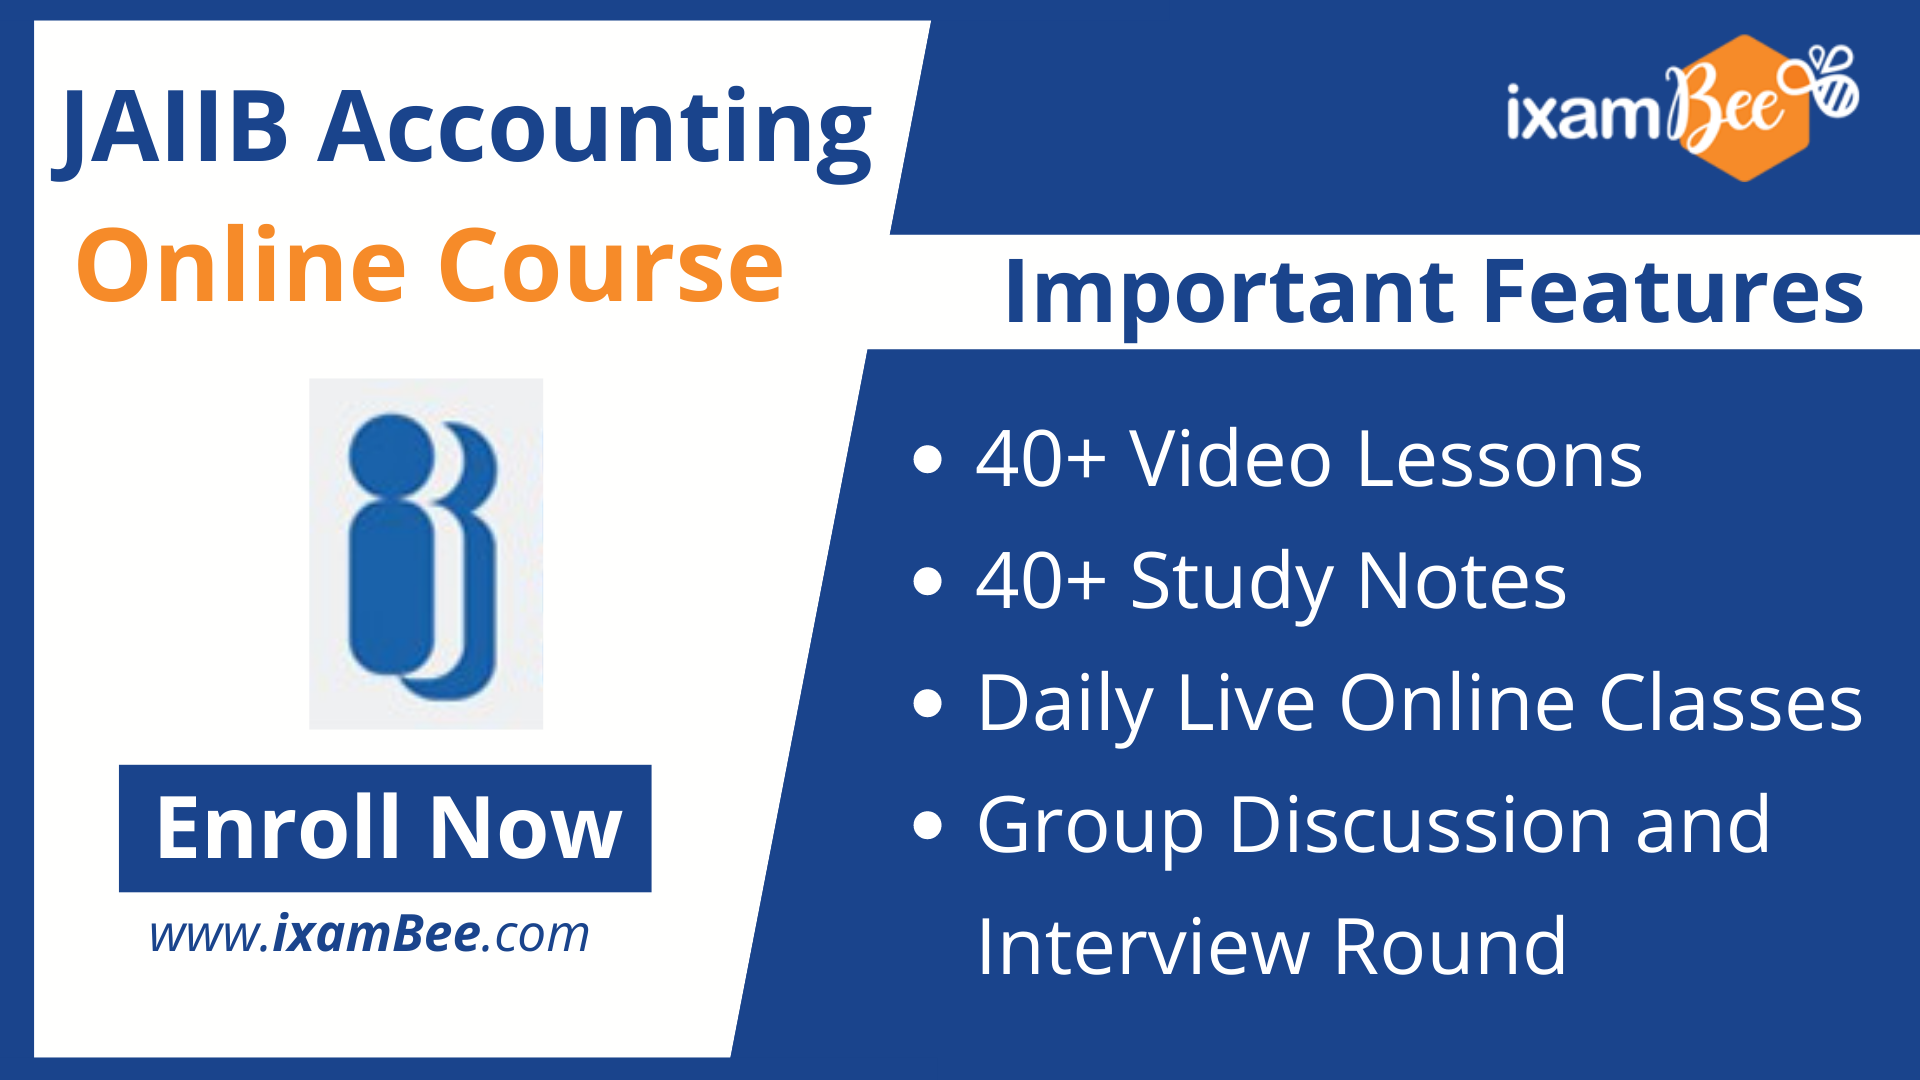 JAIIB Paper 2 (Accounting) online course